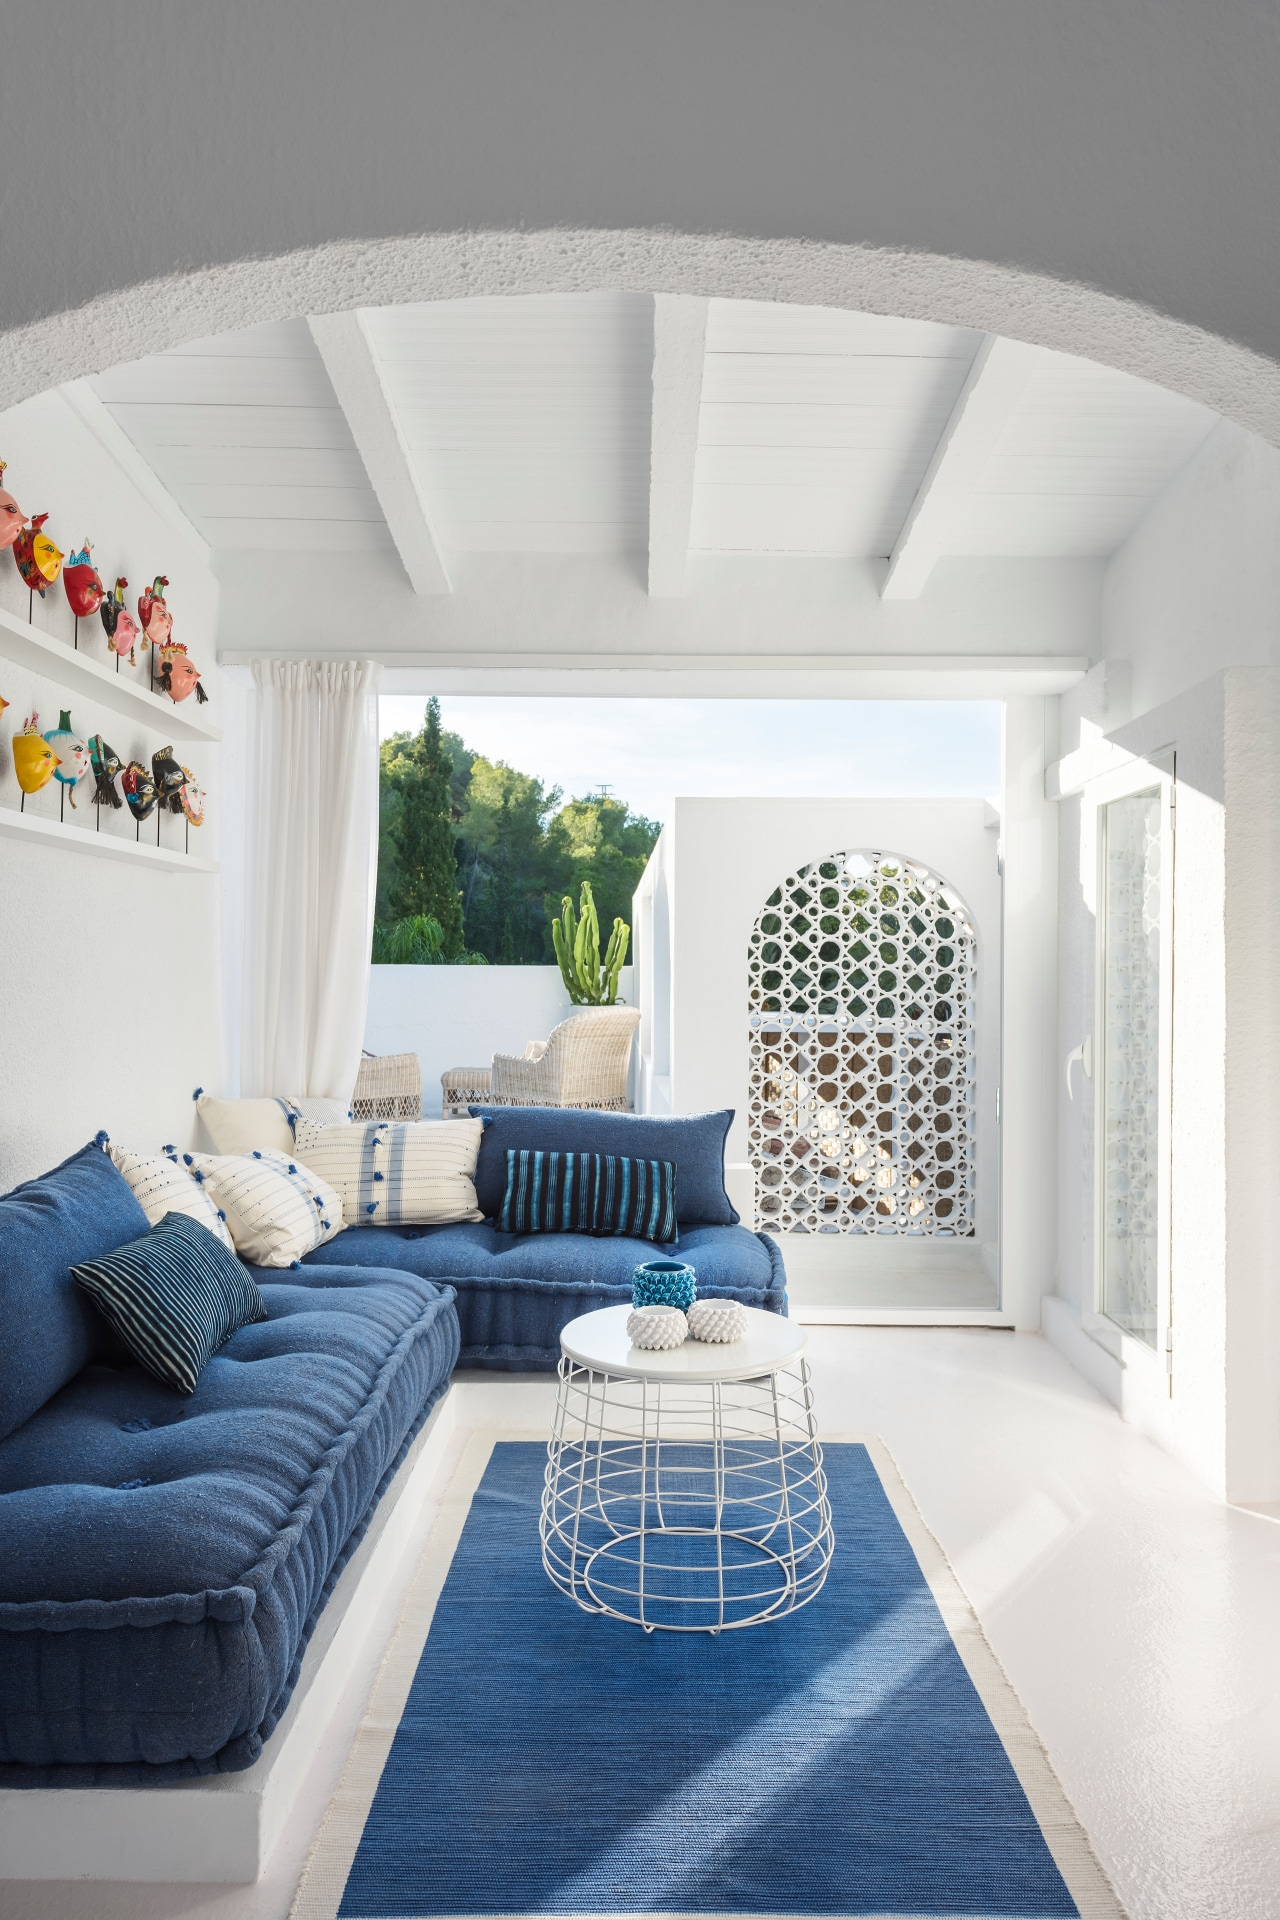 House tour: an interior designer's Spanish hideaway